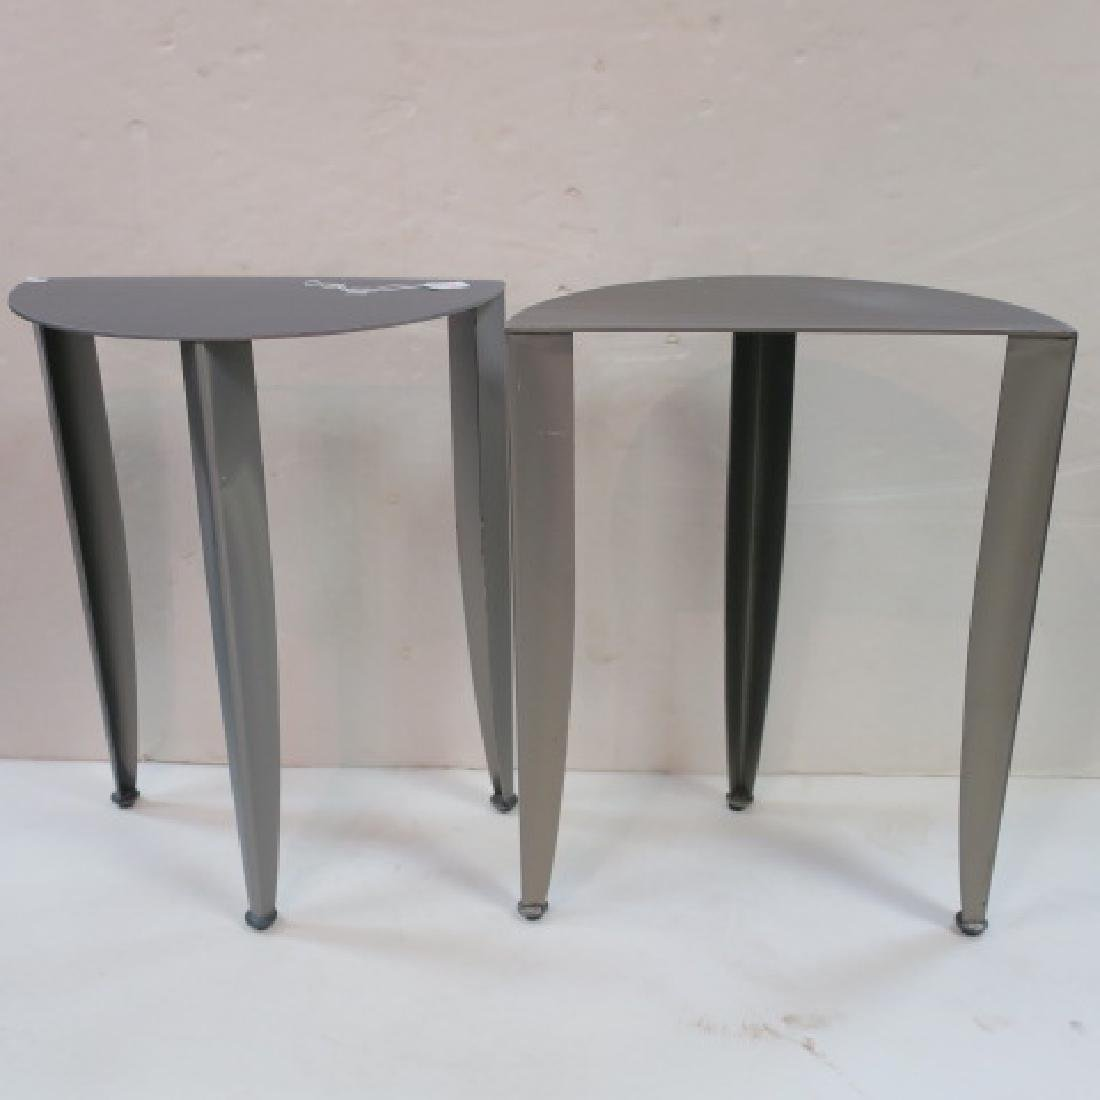 Pair of Petite Steel Industrial Demi-Lune Tables: - 4